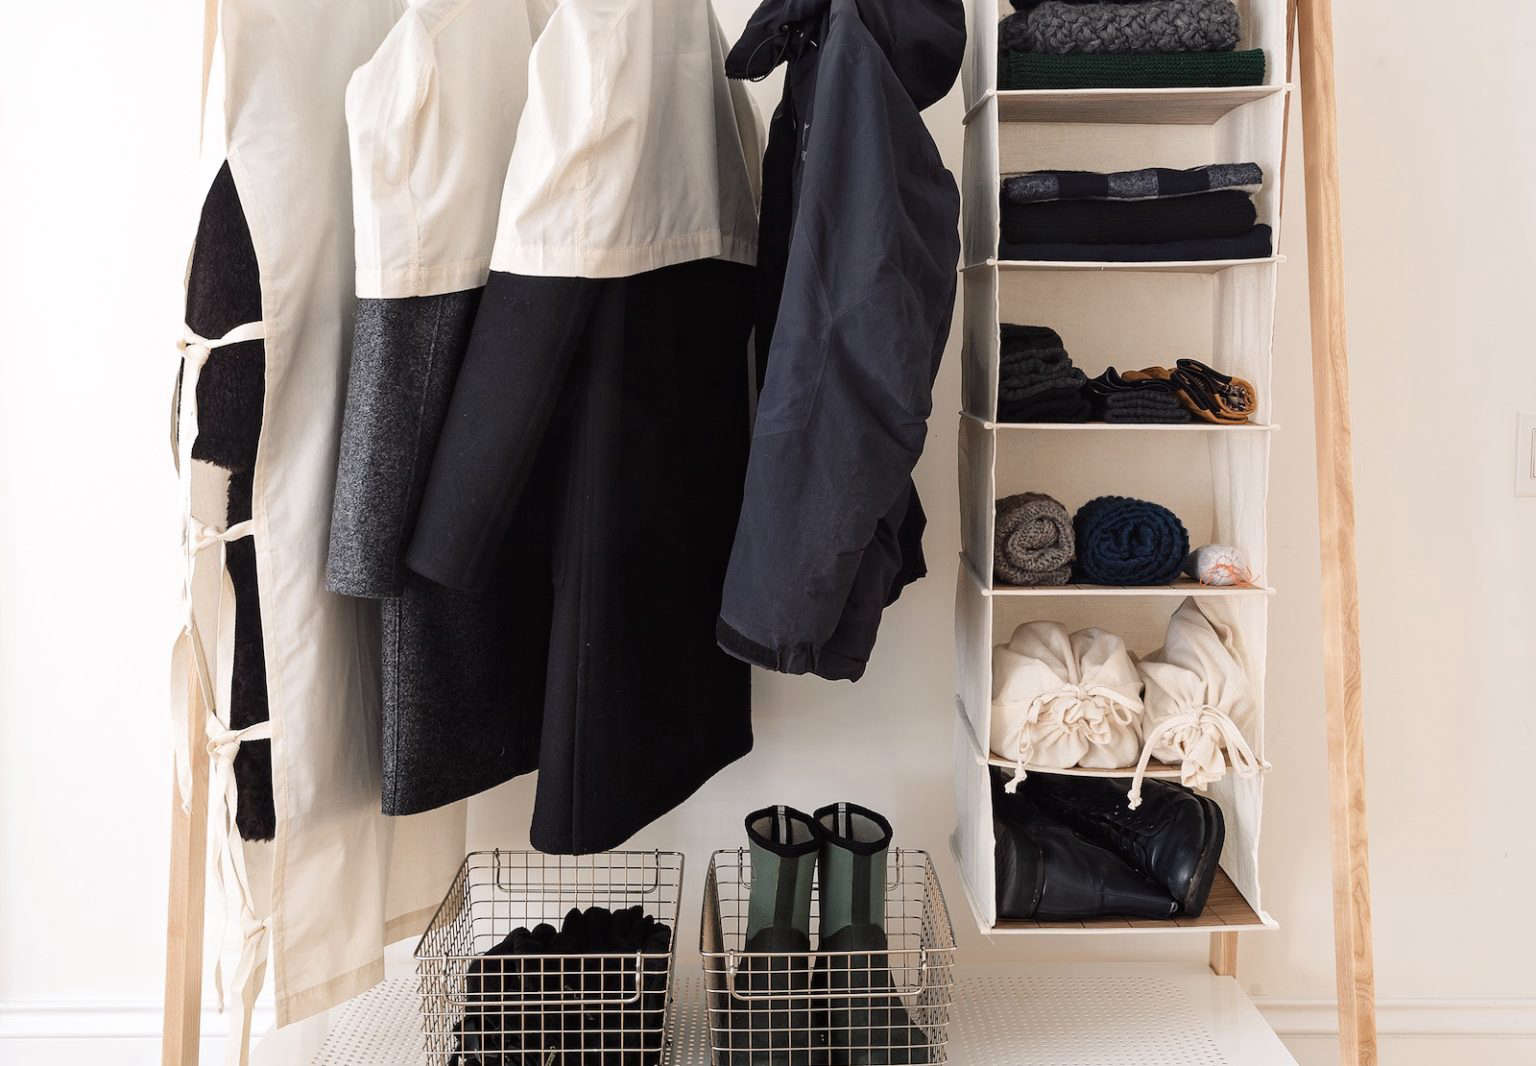 Out of Season Clothes Rack by Matthew Williams for The Organized Home